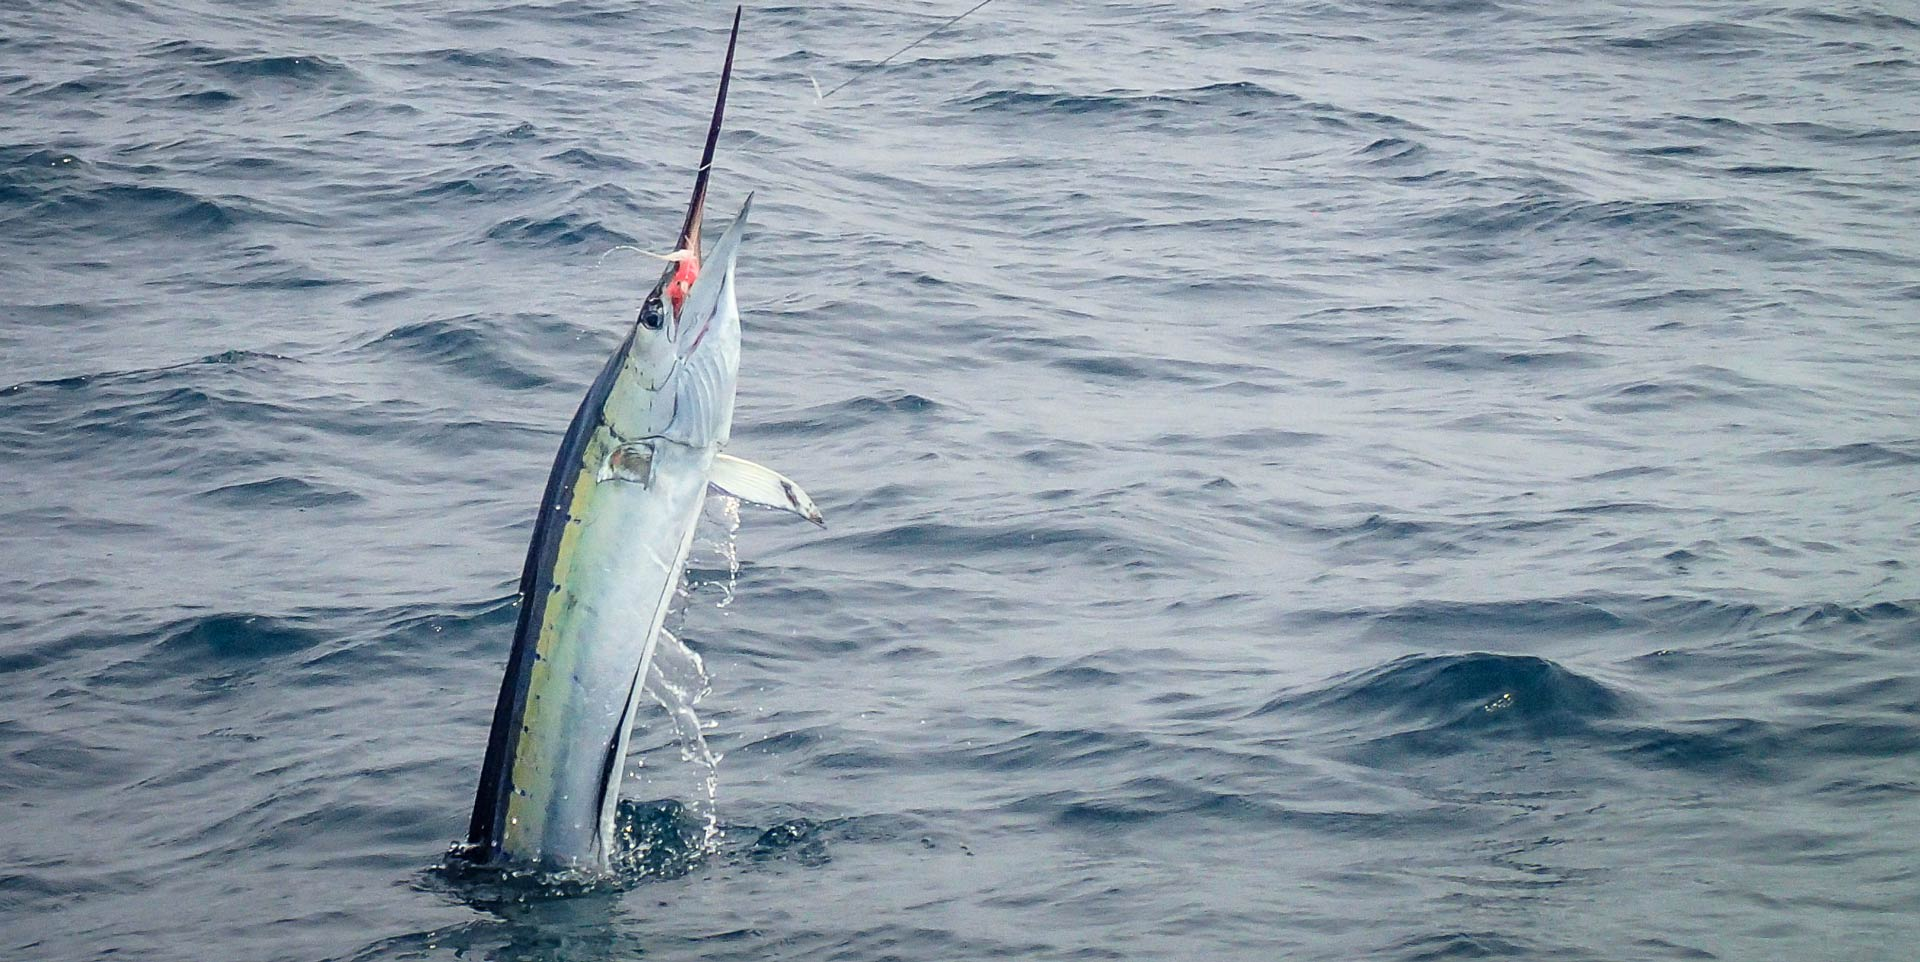 fly-fishing-rompin-sailfish-dron_150823_2001_1920